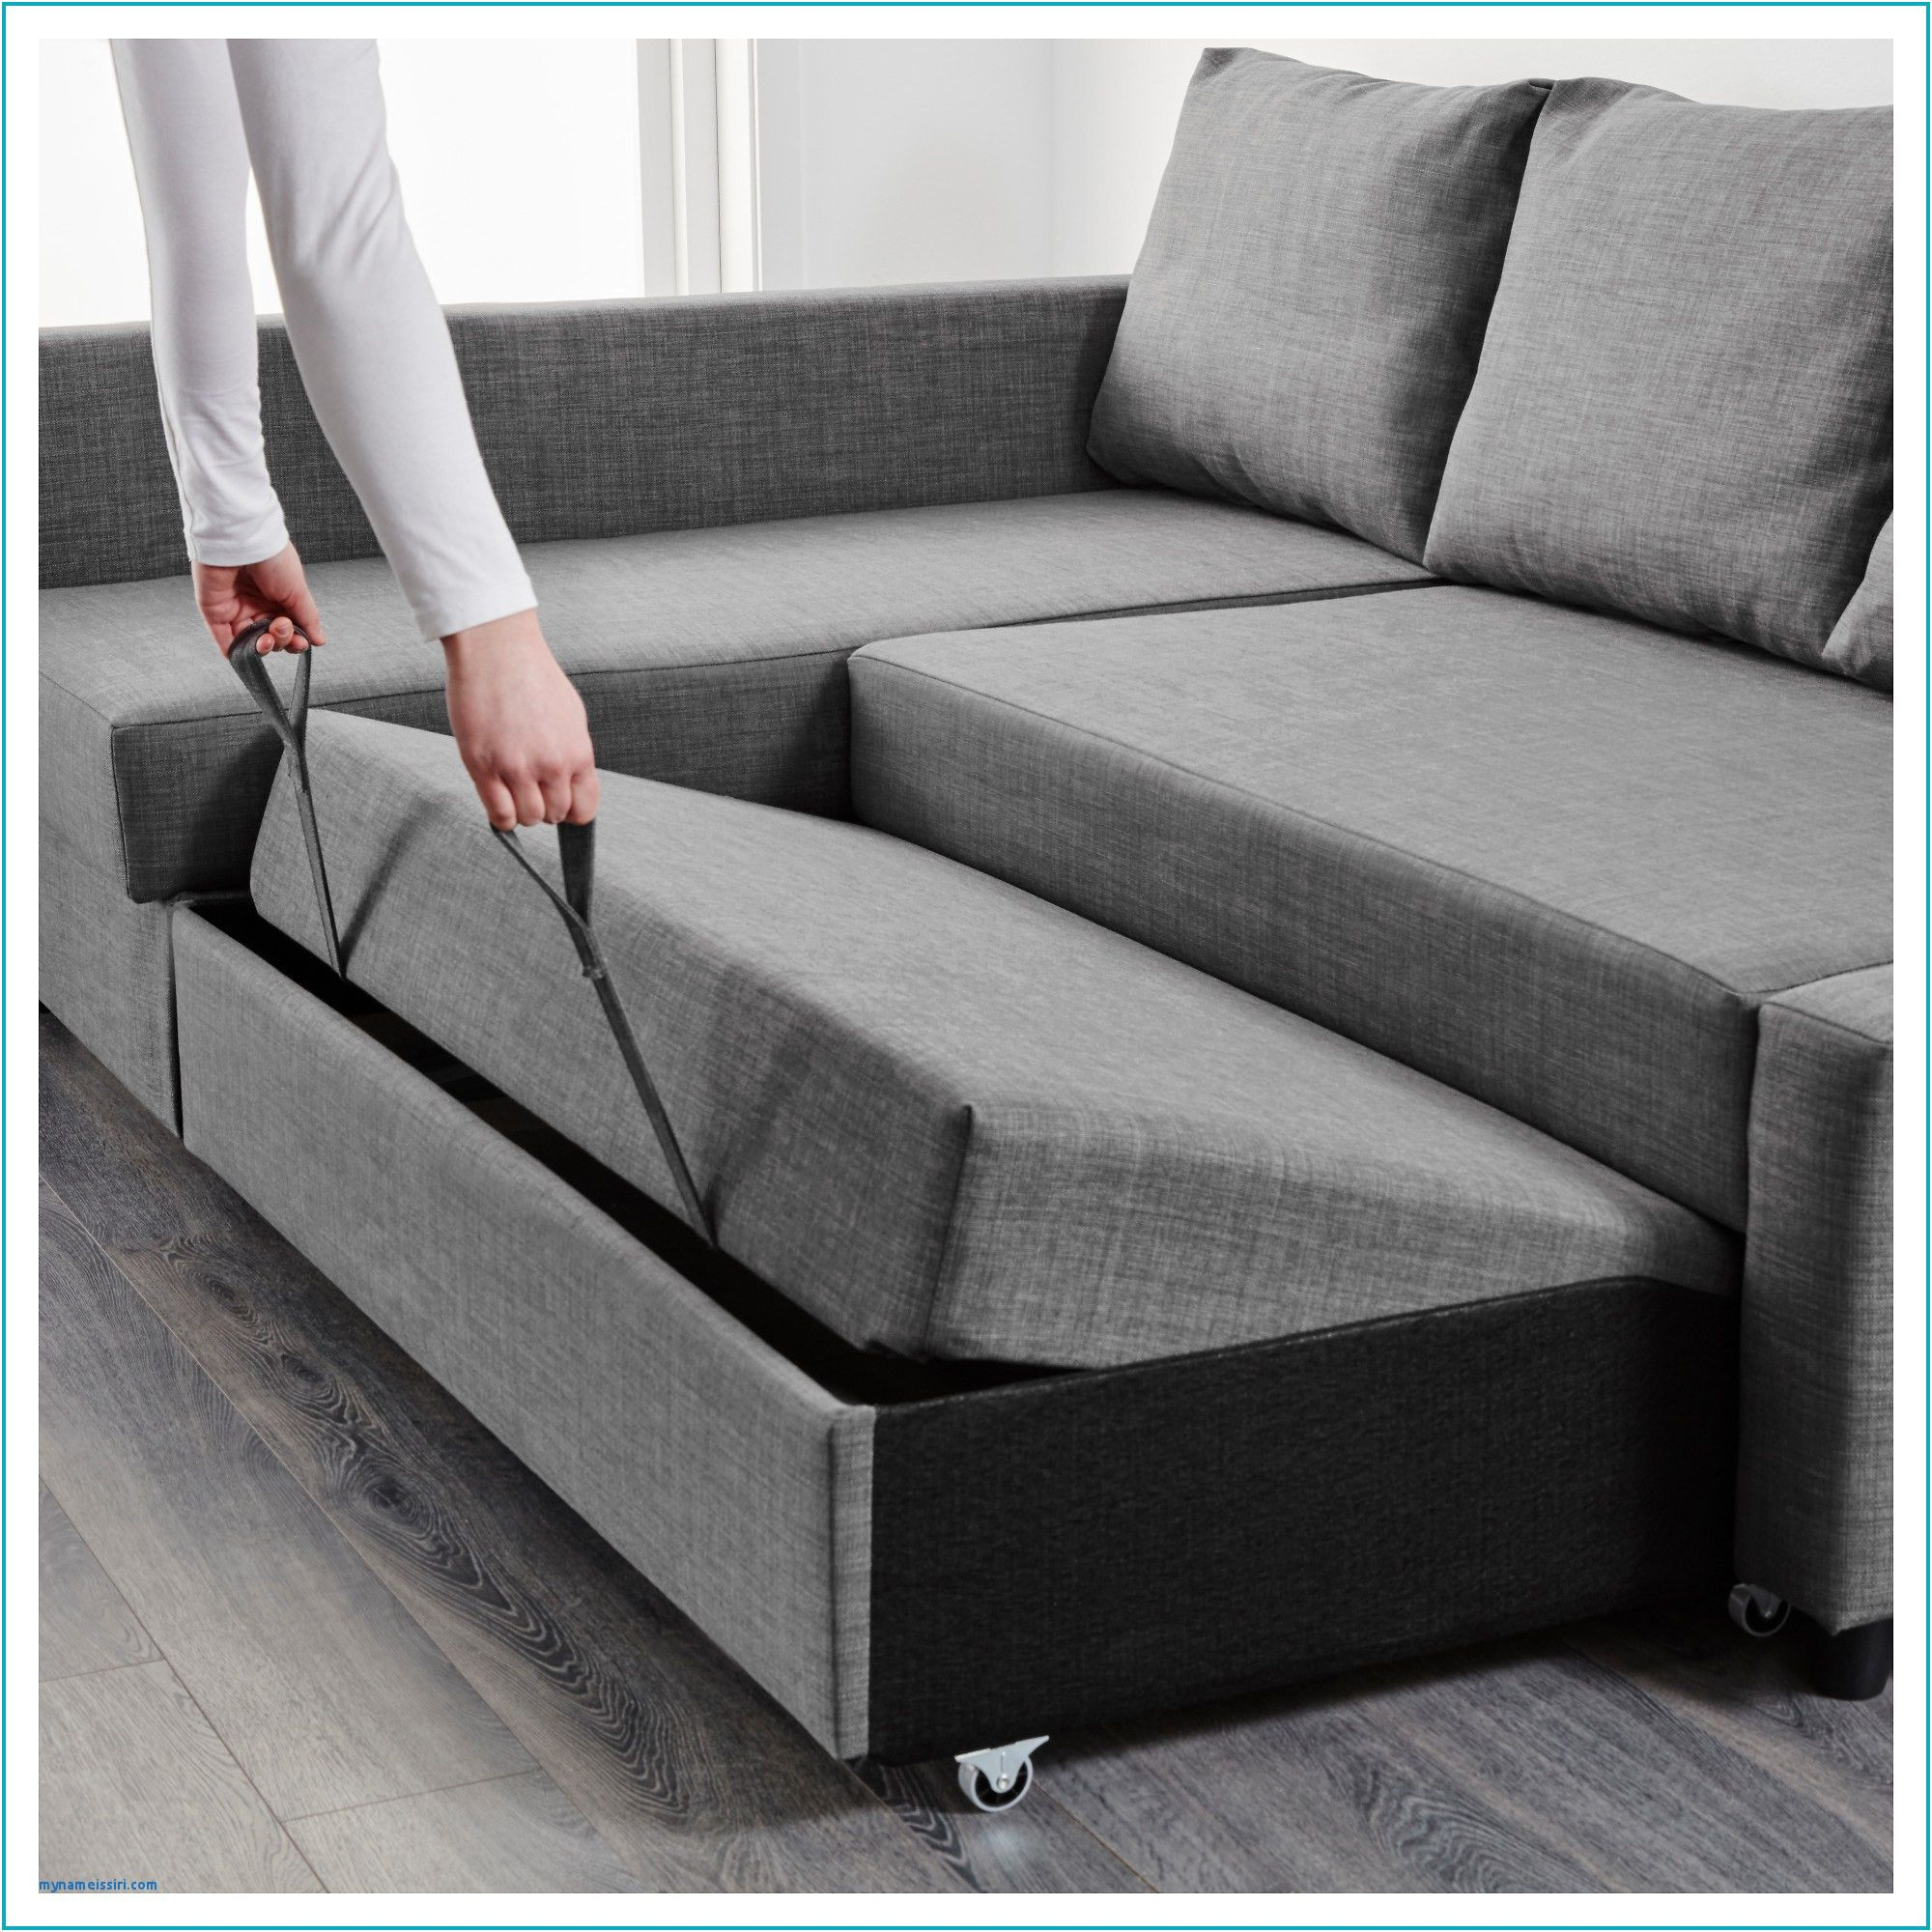 Neu Couch Billig Kaufen Sofa Bed With Chaise Sofa Bed With Storage Corner Sofa With Storage